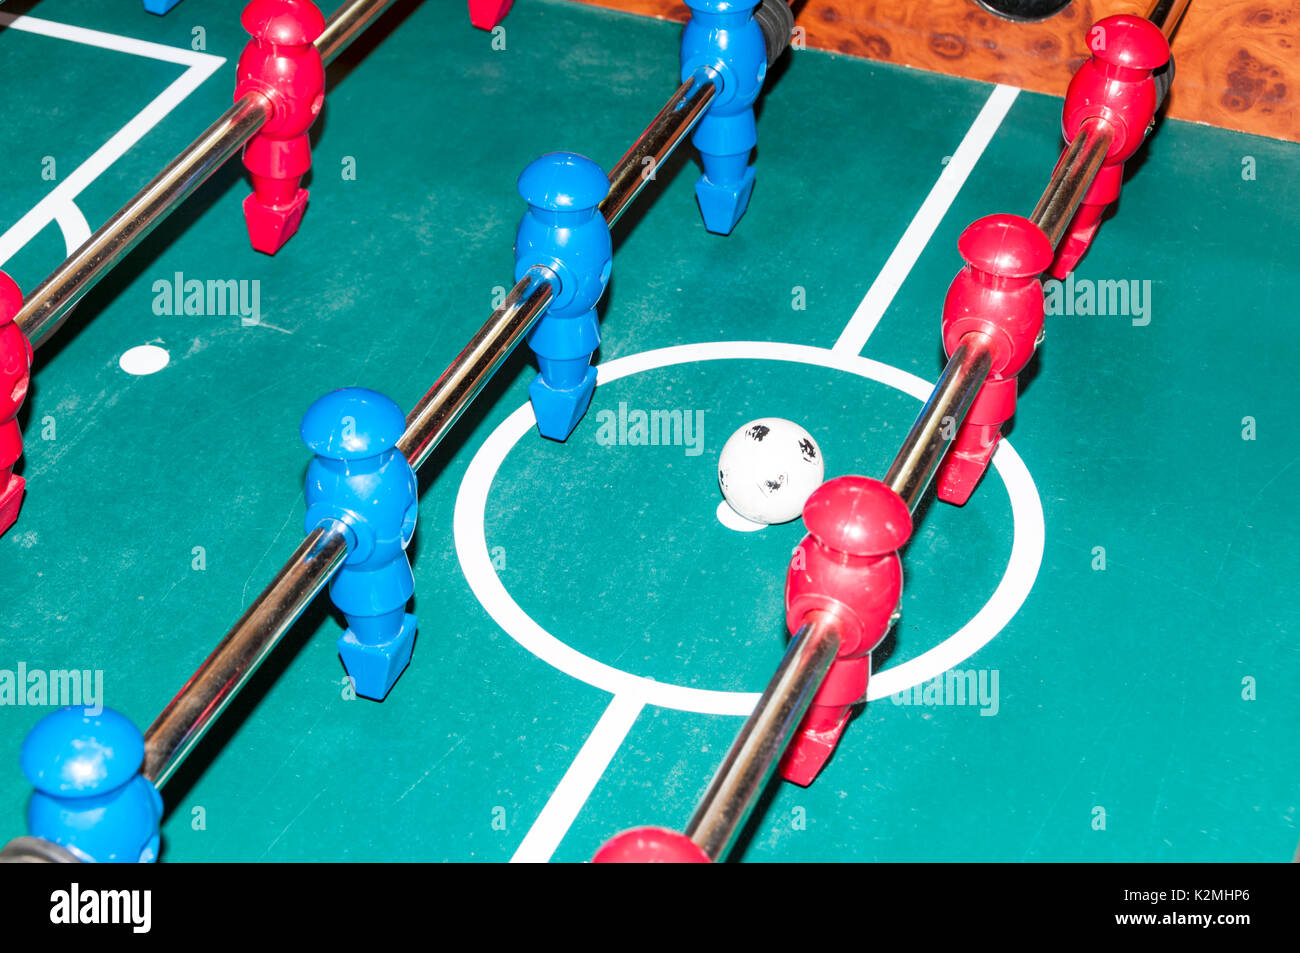 Red and blue teams lined up for the kick-off in a game of table football - Stock Image